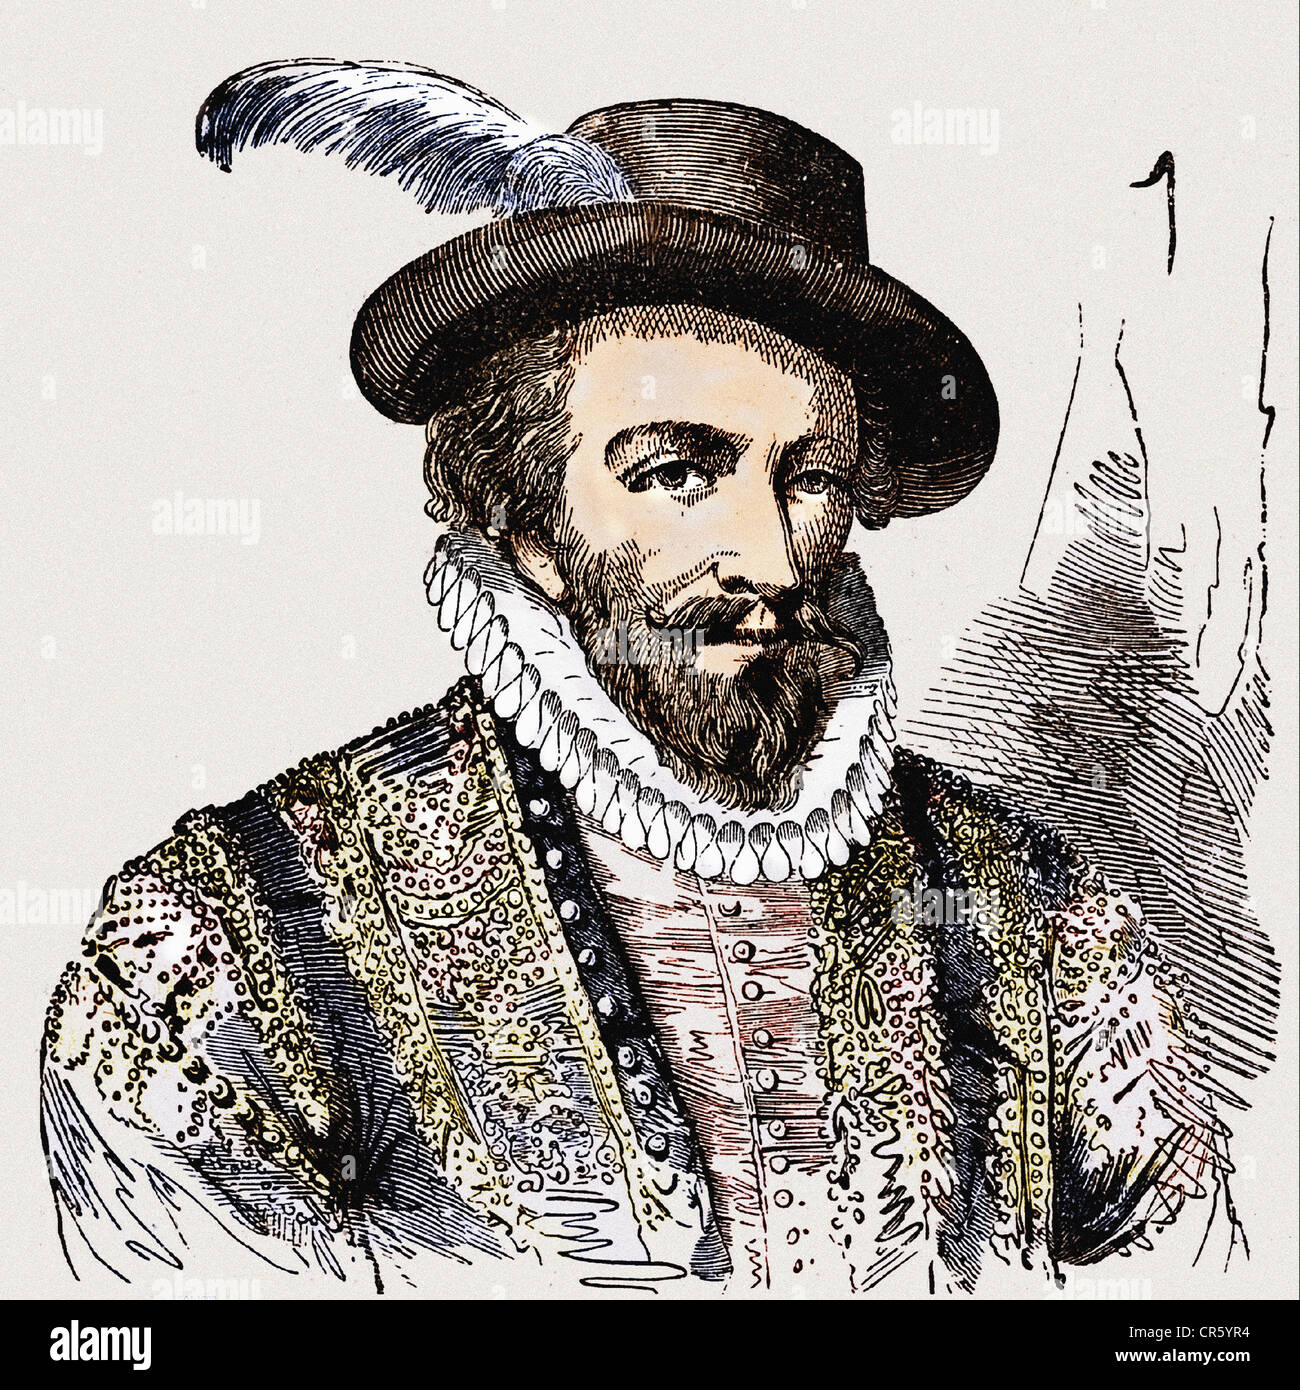 Raleigh, Walter, circa 1554 - 29. 10.1618, English navigator, portrait, wood engraving, 19th century, later coloured, - Stock Image